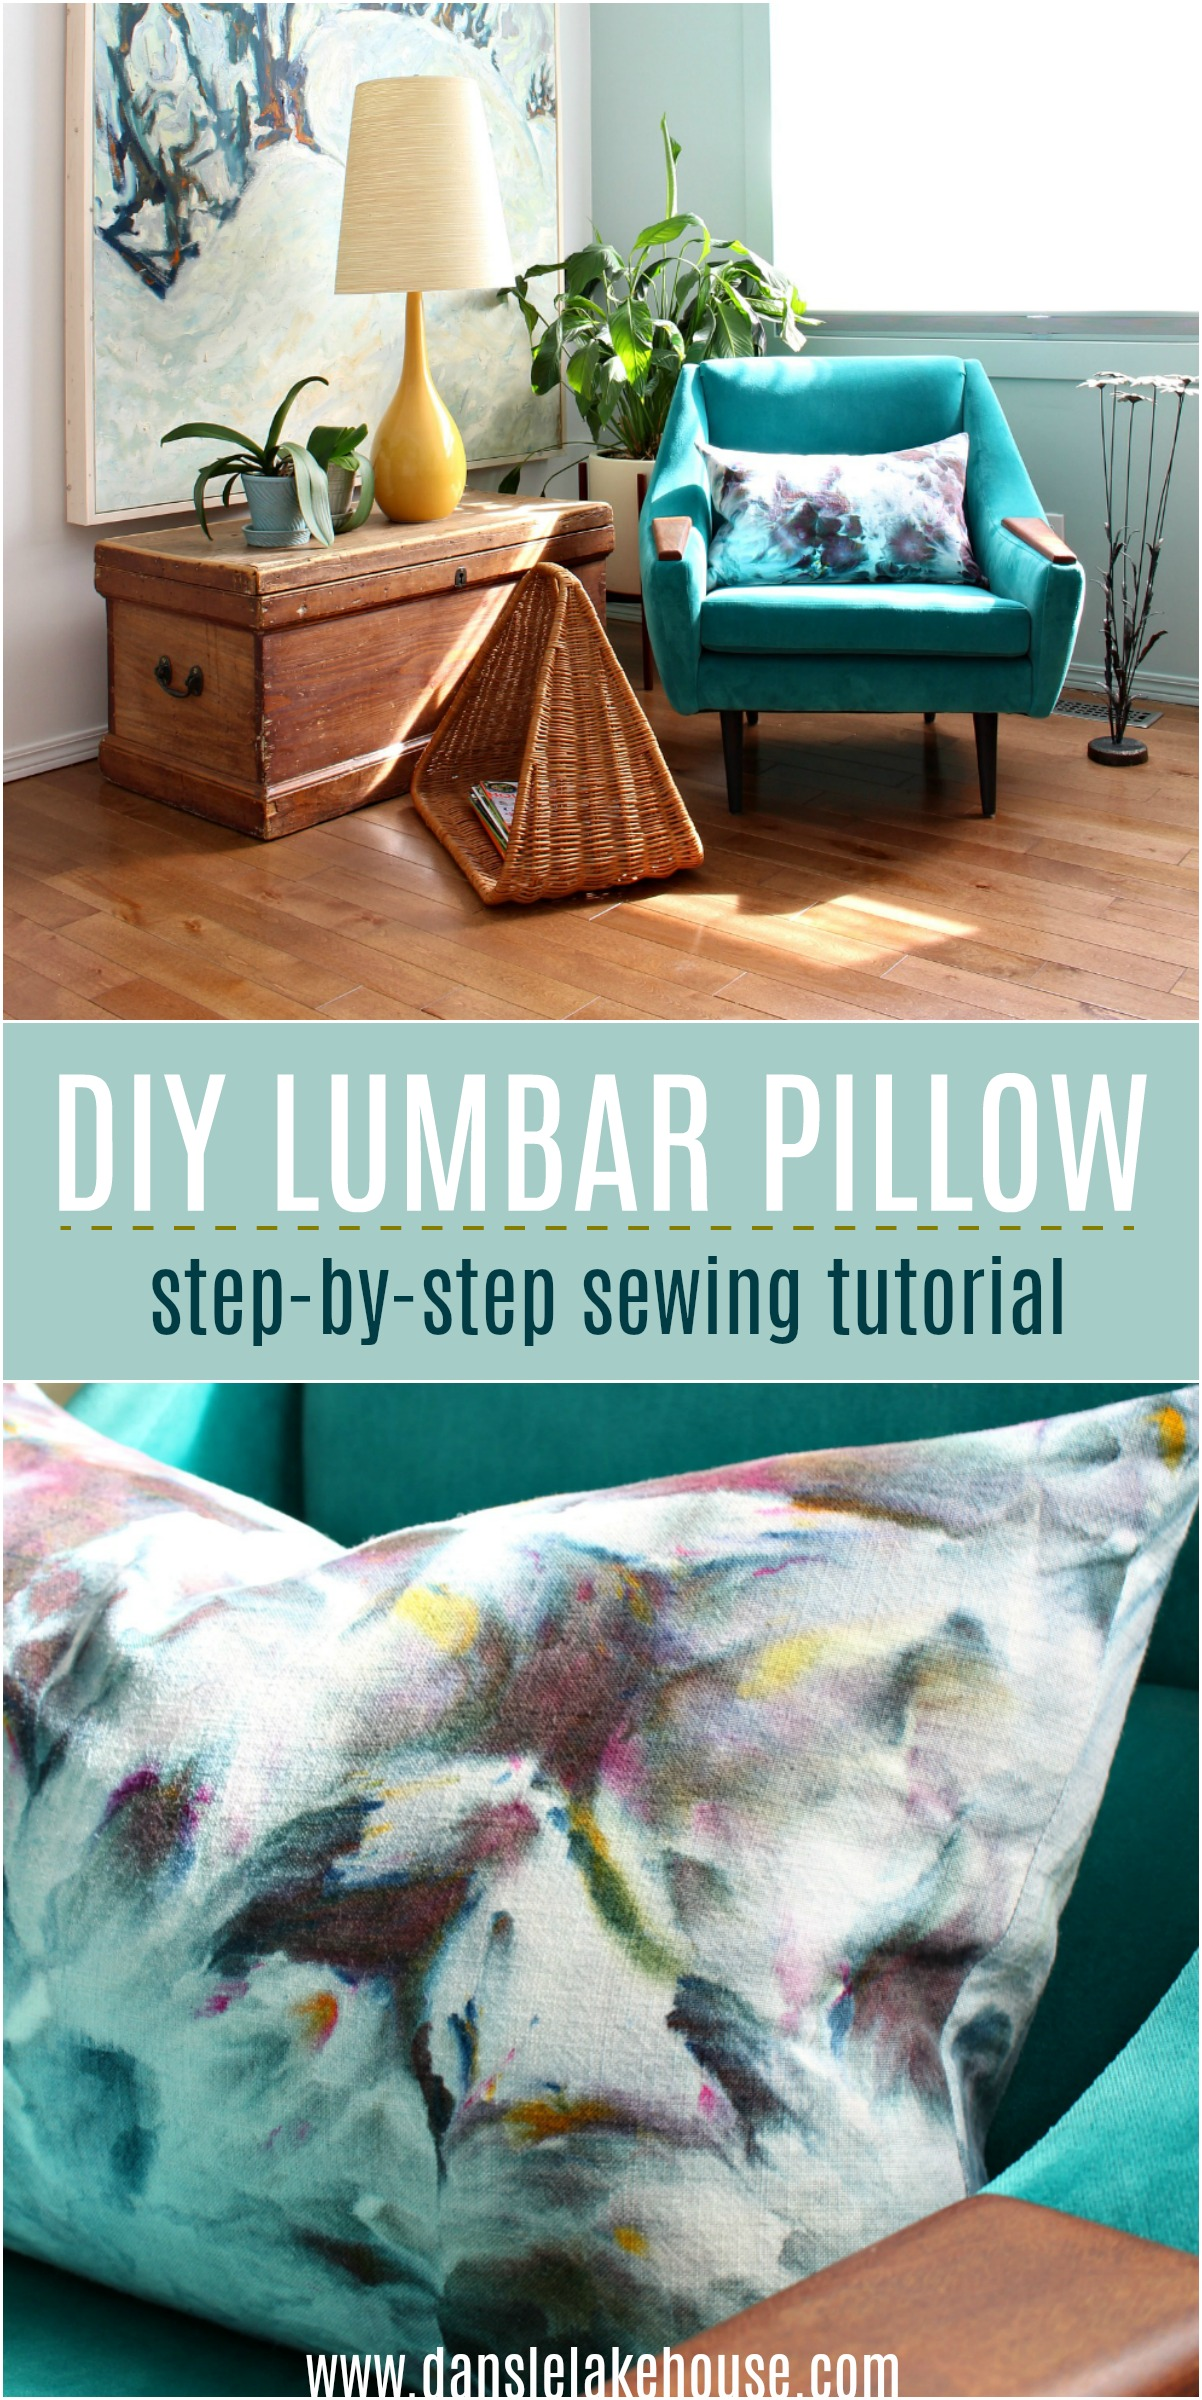 How to Sew a Lumbar Pillow | Learn How to Sew a Throw Pillow with a Zipper